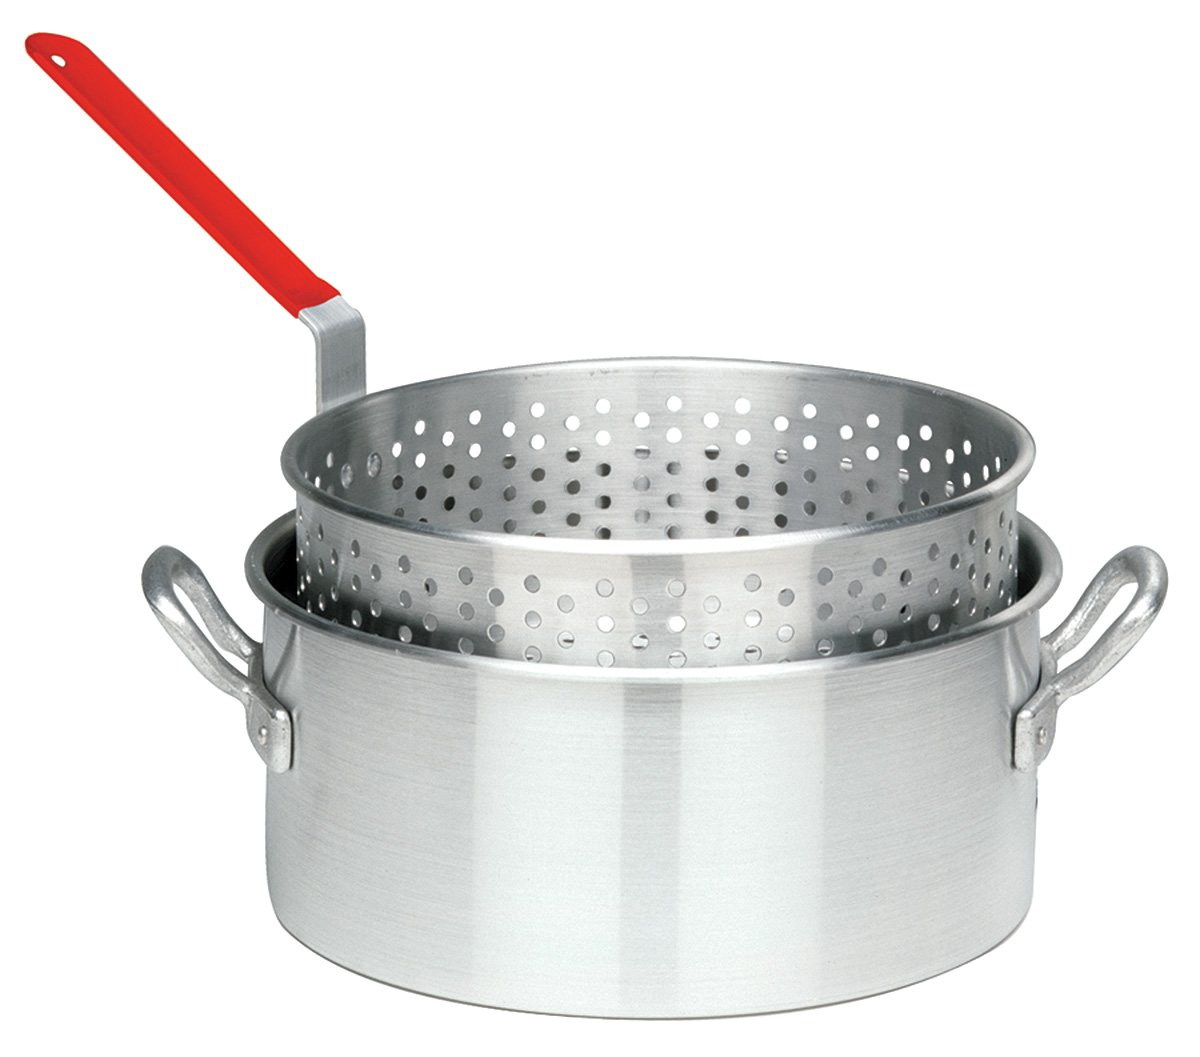 Bayou Classic 10 Quart Aluminum Fry Pot and Basket with Cool Touch Handle by Bayou Classic